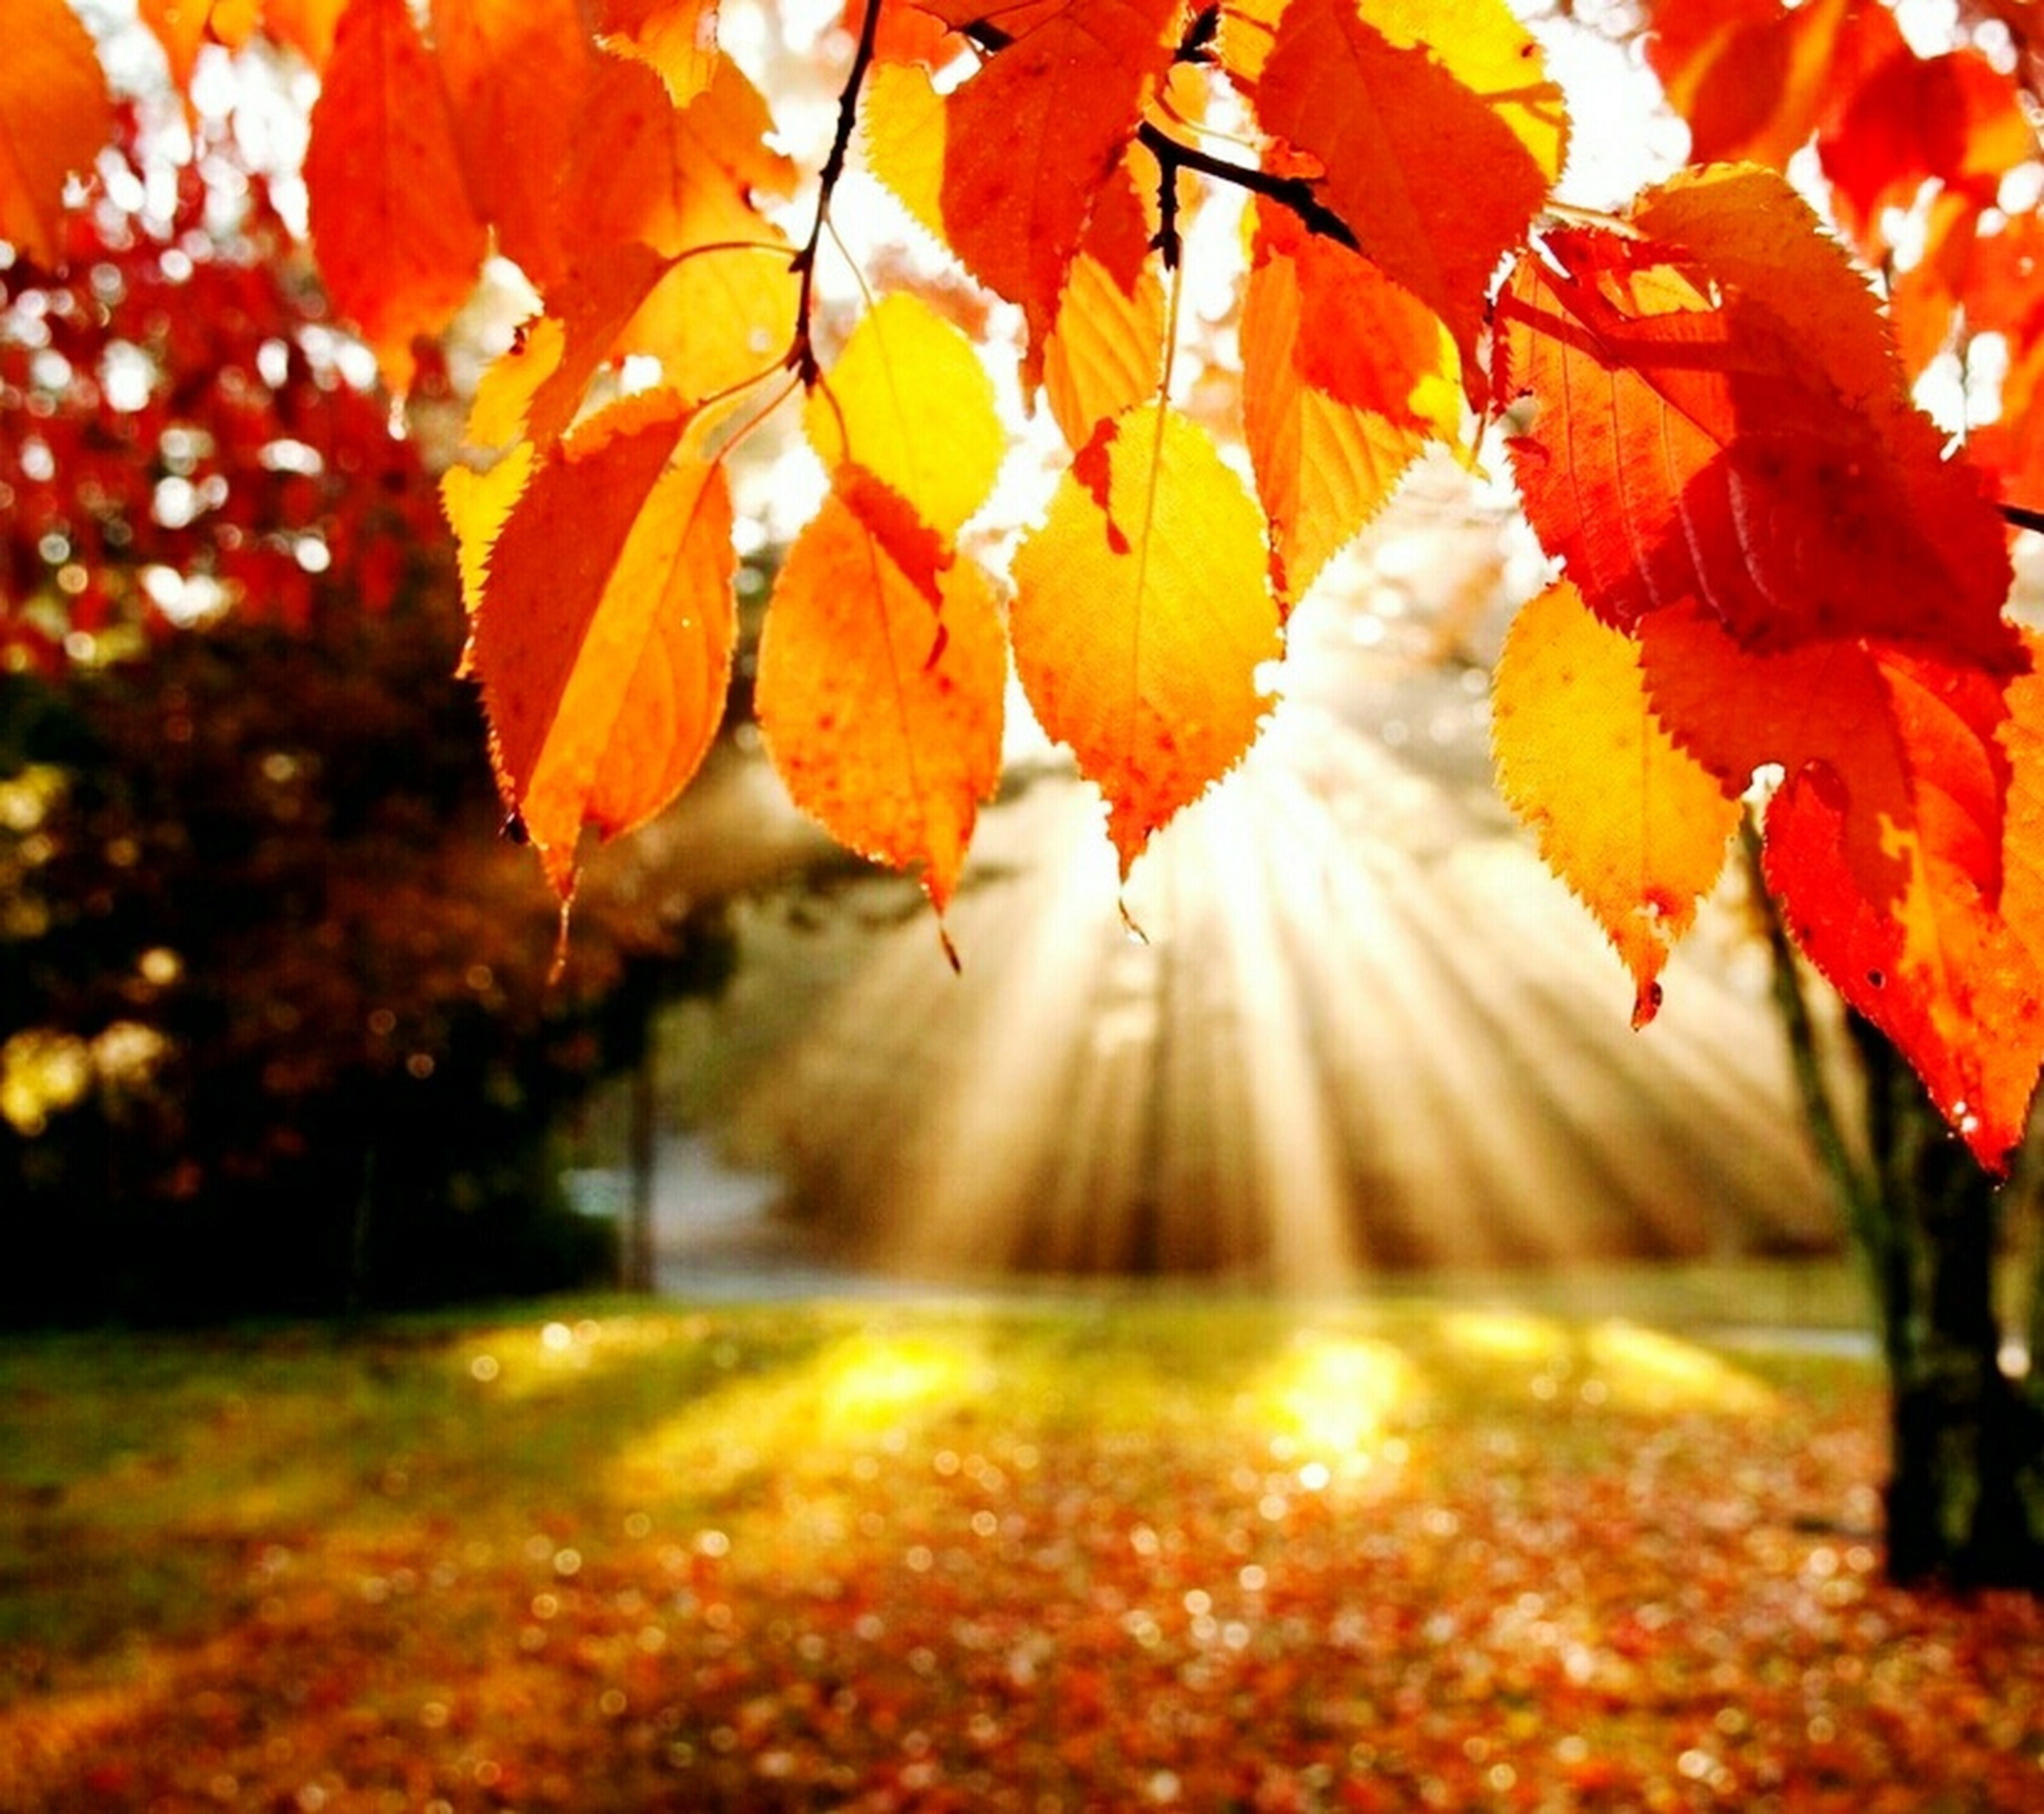 autumn, change, season, leaf, tree, orange color, leaves, focus on foreground, branch, nature, selective focus, maple leaf, red, beauty in nature, close-up, growth, tranquility, leaf vein, maple tree, fallen